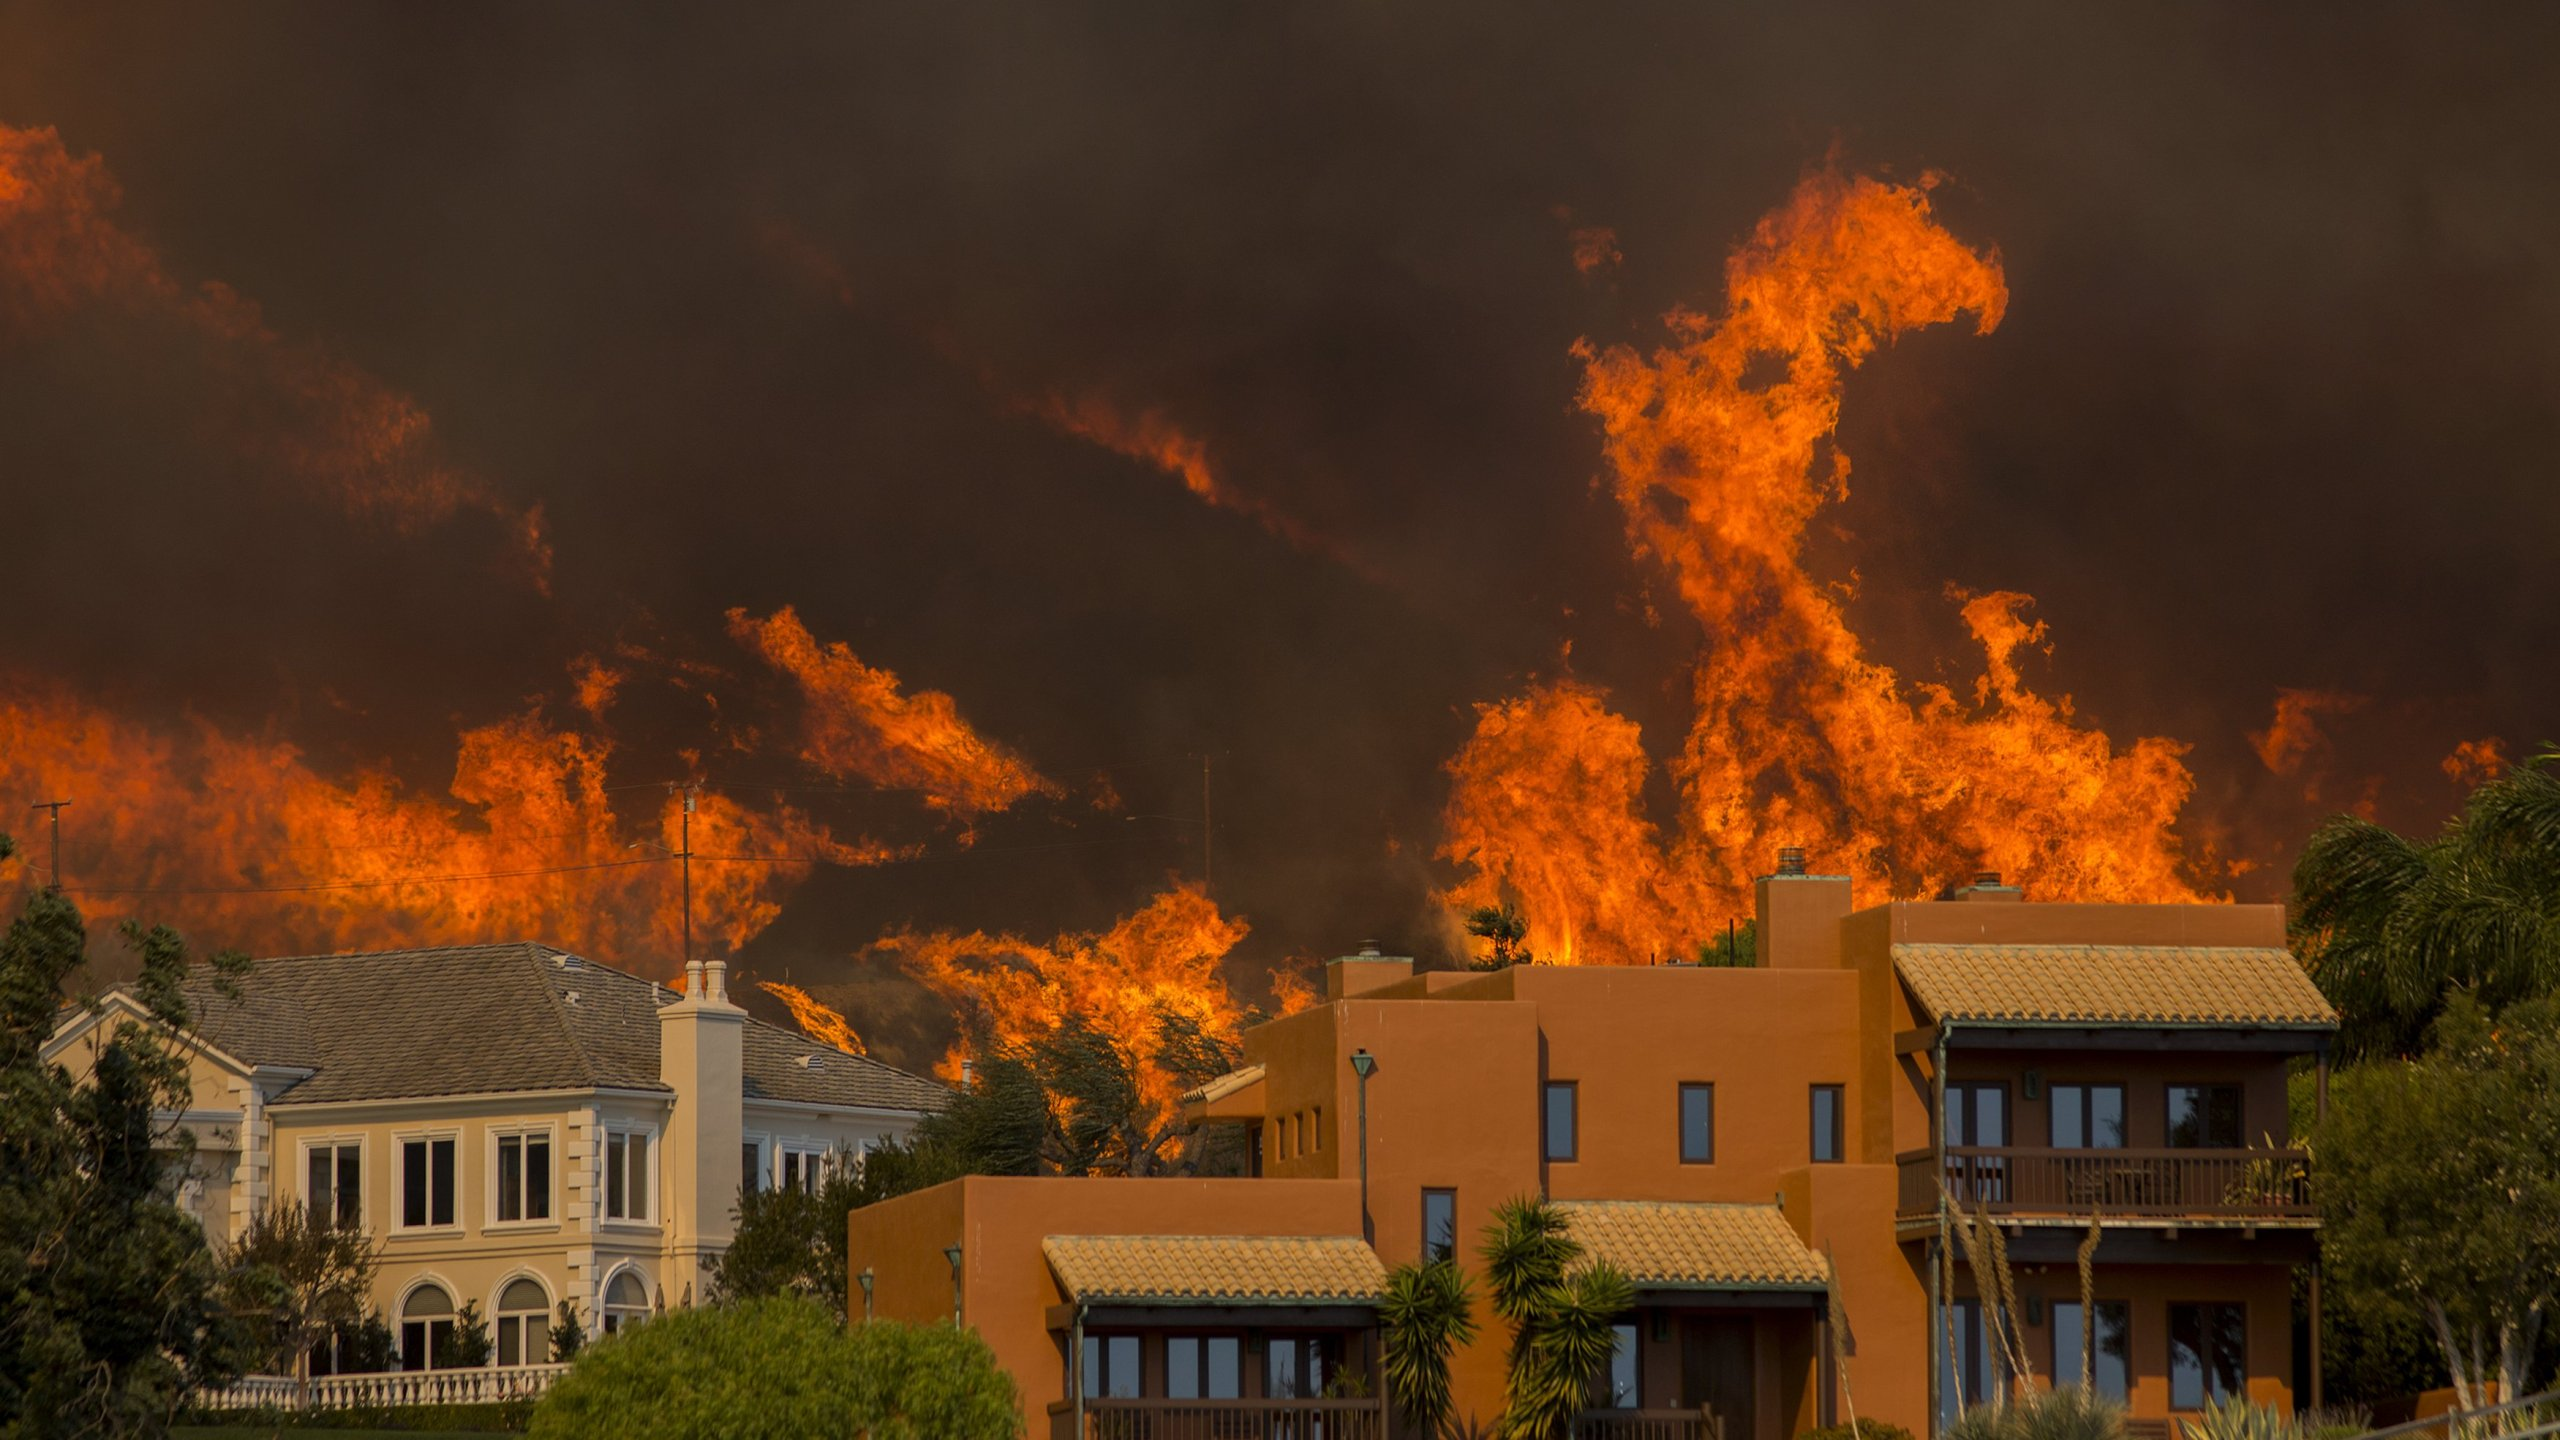 The Woolsey Fire approaches homes in Malibu on Nov. 9, 2018. (David McNew / Getty Images)